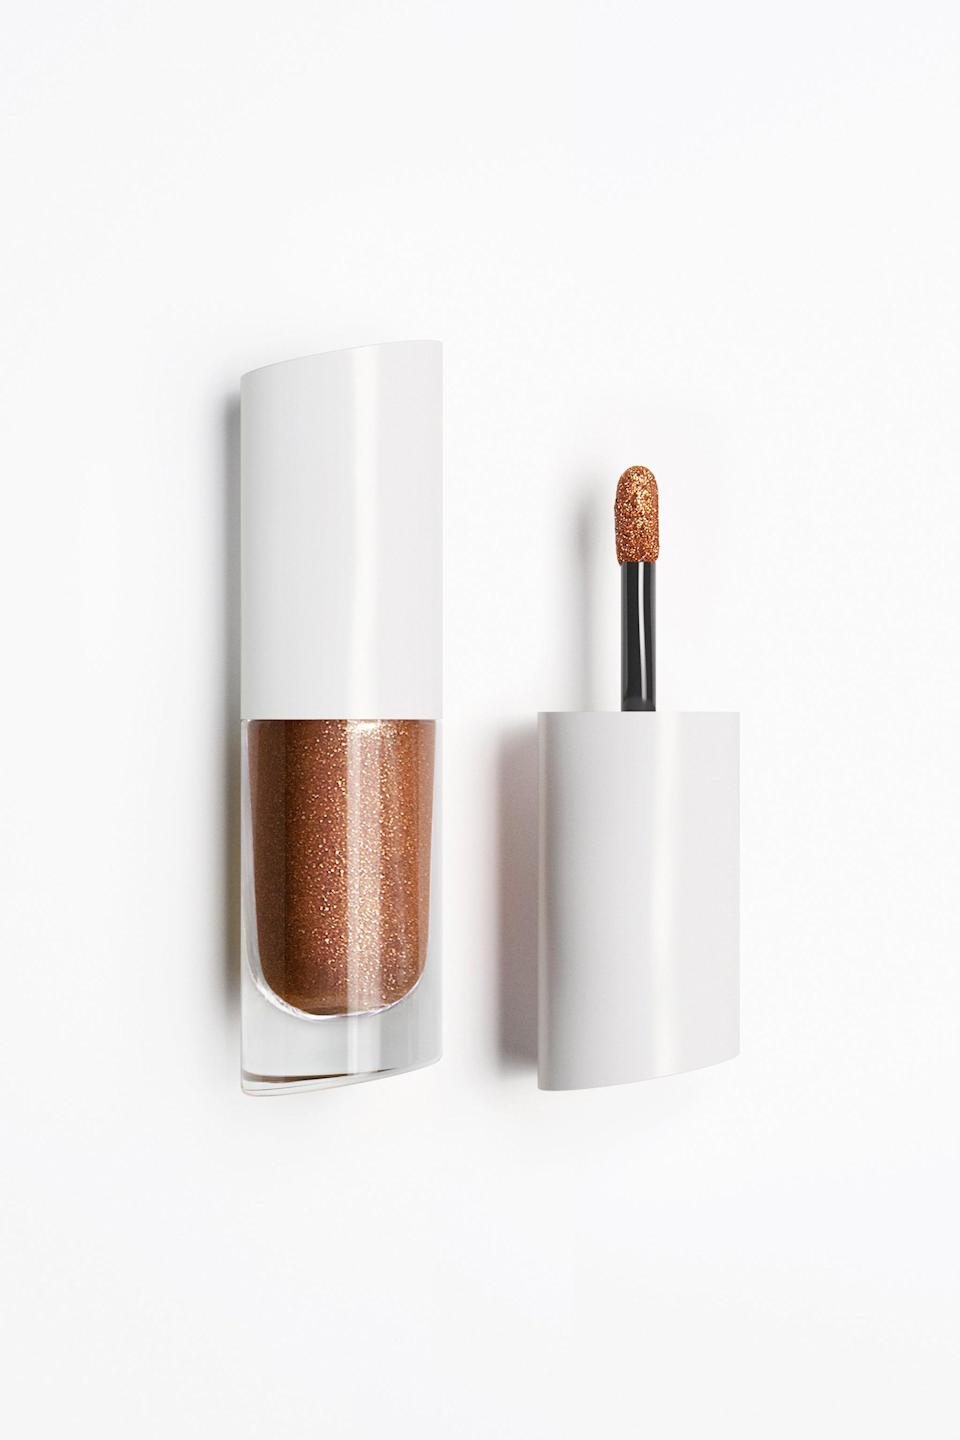 """<h3>Metal Foil Loose Pigment</h3><br>Meet the <a href=""""https://www.refinery29.com/en-us/best-liquid-eyeshadow"""" rel=""""nofollow noopener"""" target=""""_blank"""" data-ylk=""""slk:liquid-gold eyeshadow"""" class=""""link rapid-noclick-resp"""">liquid-gold eyeshadow</a> that will carry you through summer. According to Kendal, you can also dab the glitter-loaded doe foot on your lips and cheekbones for a reflective highlight.<br><br><strong>Zara</strong> Metal Foil Loose Pigment, $, available at <a href=""""https://go.skimresources.com/?id=30283X879131&url=https%3A%2F%2Fwww.zara.com%2Fus%2Fen%2Fmetal-foil-loose-pigment-p24160300.html"""" rel=""""nofollow noopener"""" target=""""_blank"""" data-ylk=""""slk:Zara"""" class=""""link rapid-noclick-resp"""">Zara</a>"""